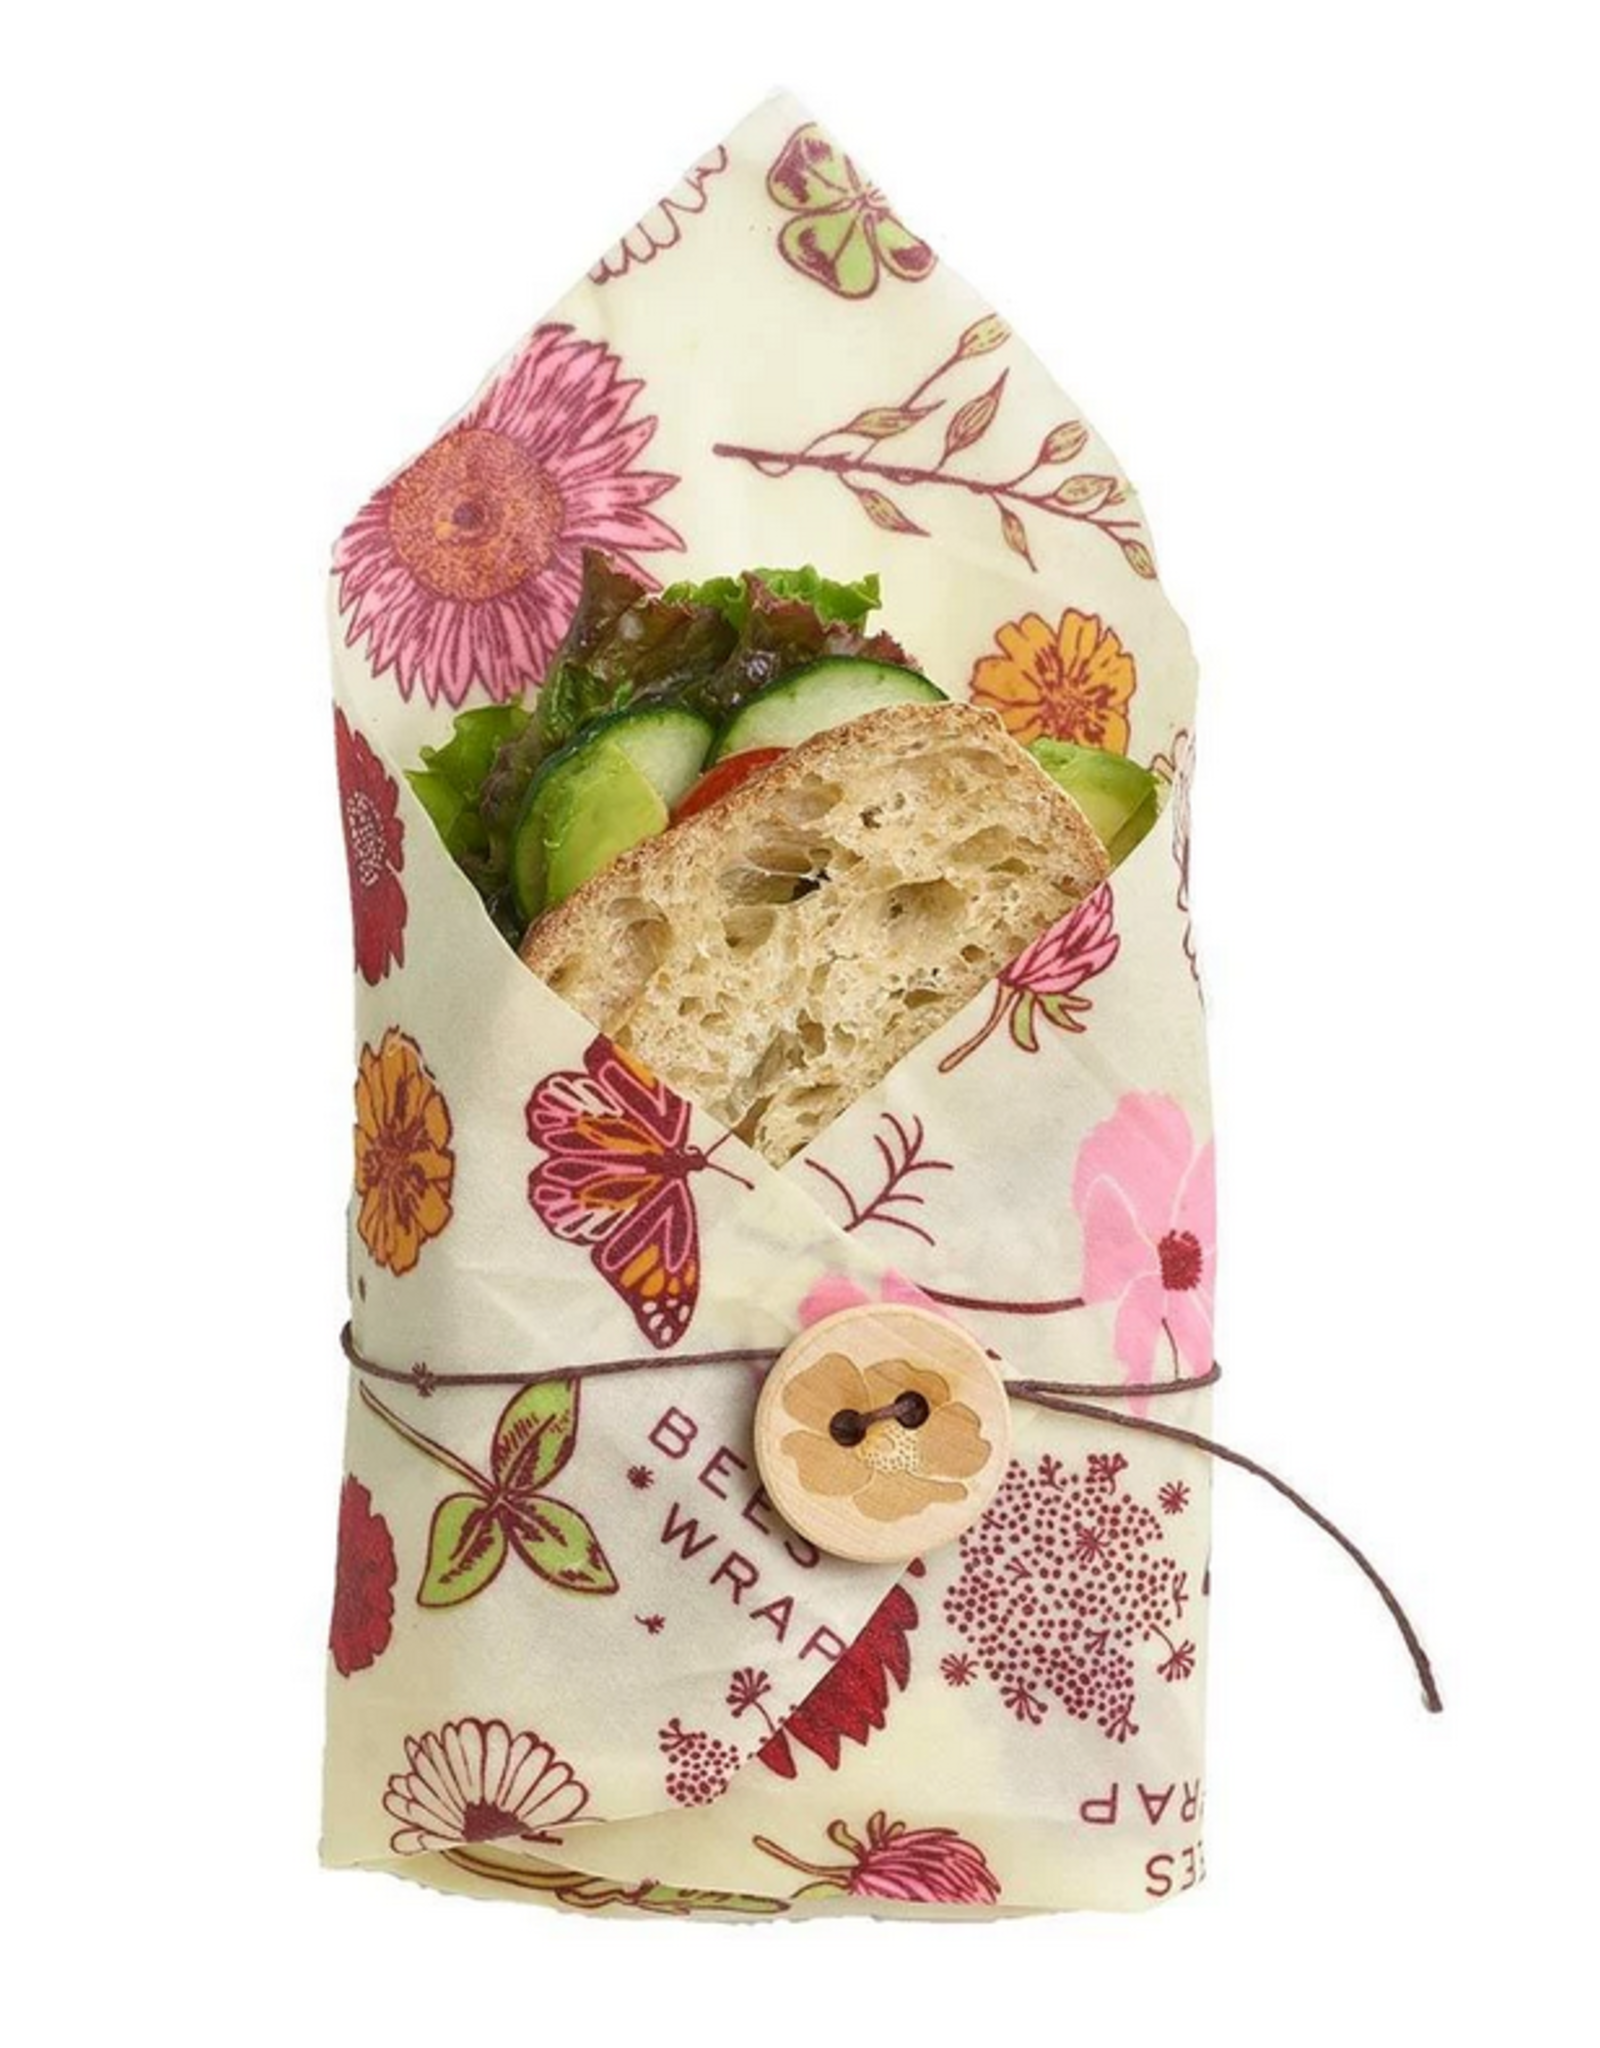 Bees Wrap Vegan Sandwich Wrap